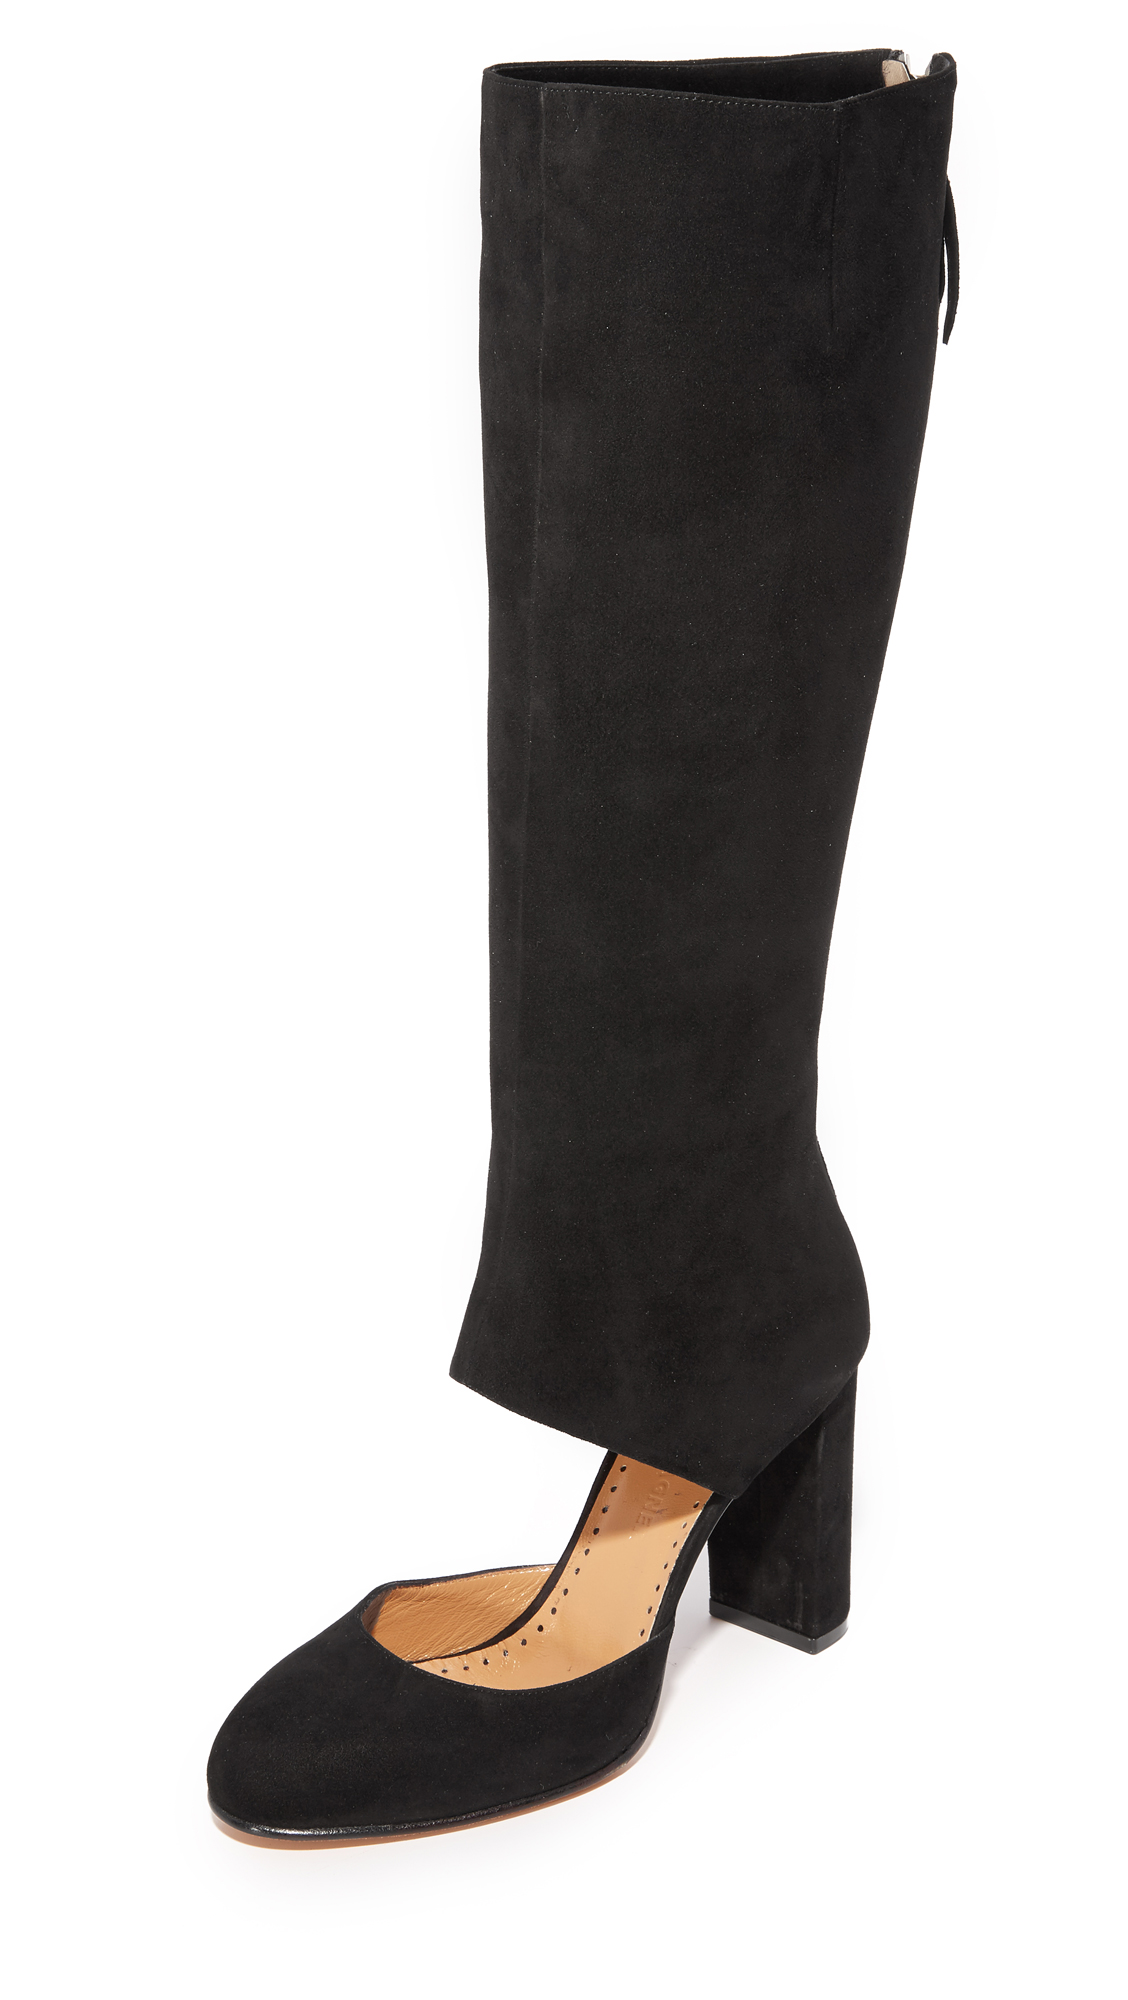 Alexa Wagner Carly Boots - Black